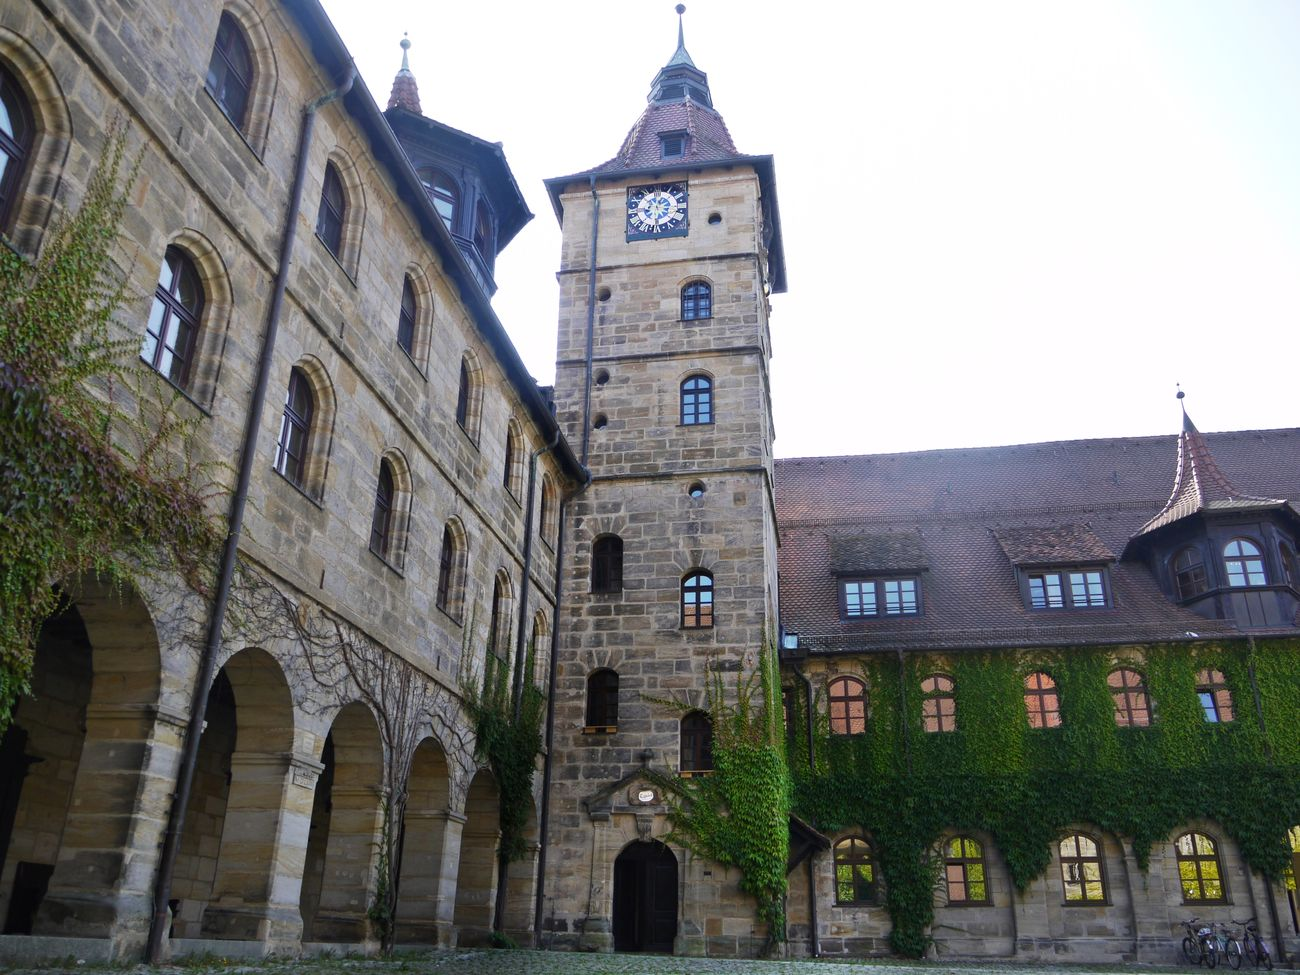 Old german school hogwarts? :-) in Bamberg Arch Architectural Feature Architecture Building Exterior Built Structure City City Life Exterior Façade Historic History Hogwarts Low Angle View Old Town Outdoors School Schule Sky Spire  Tall Tall - High Tower Town Town Hall Window Altdorf - Nürnberg